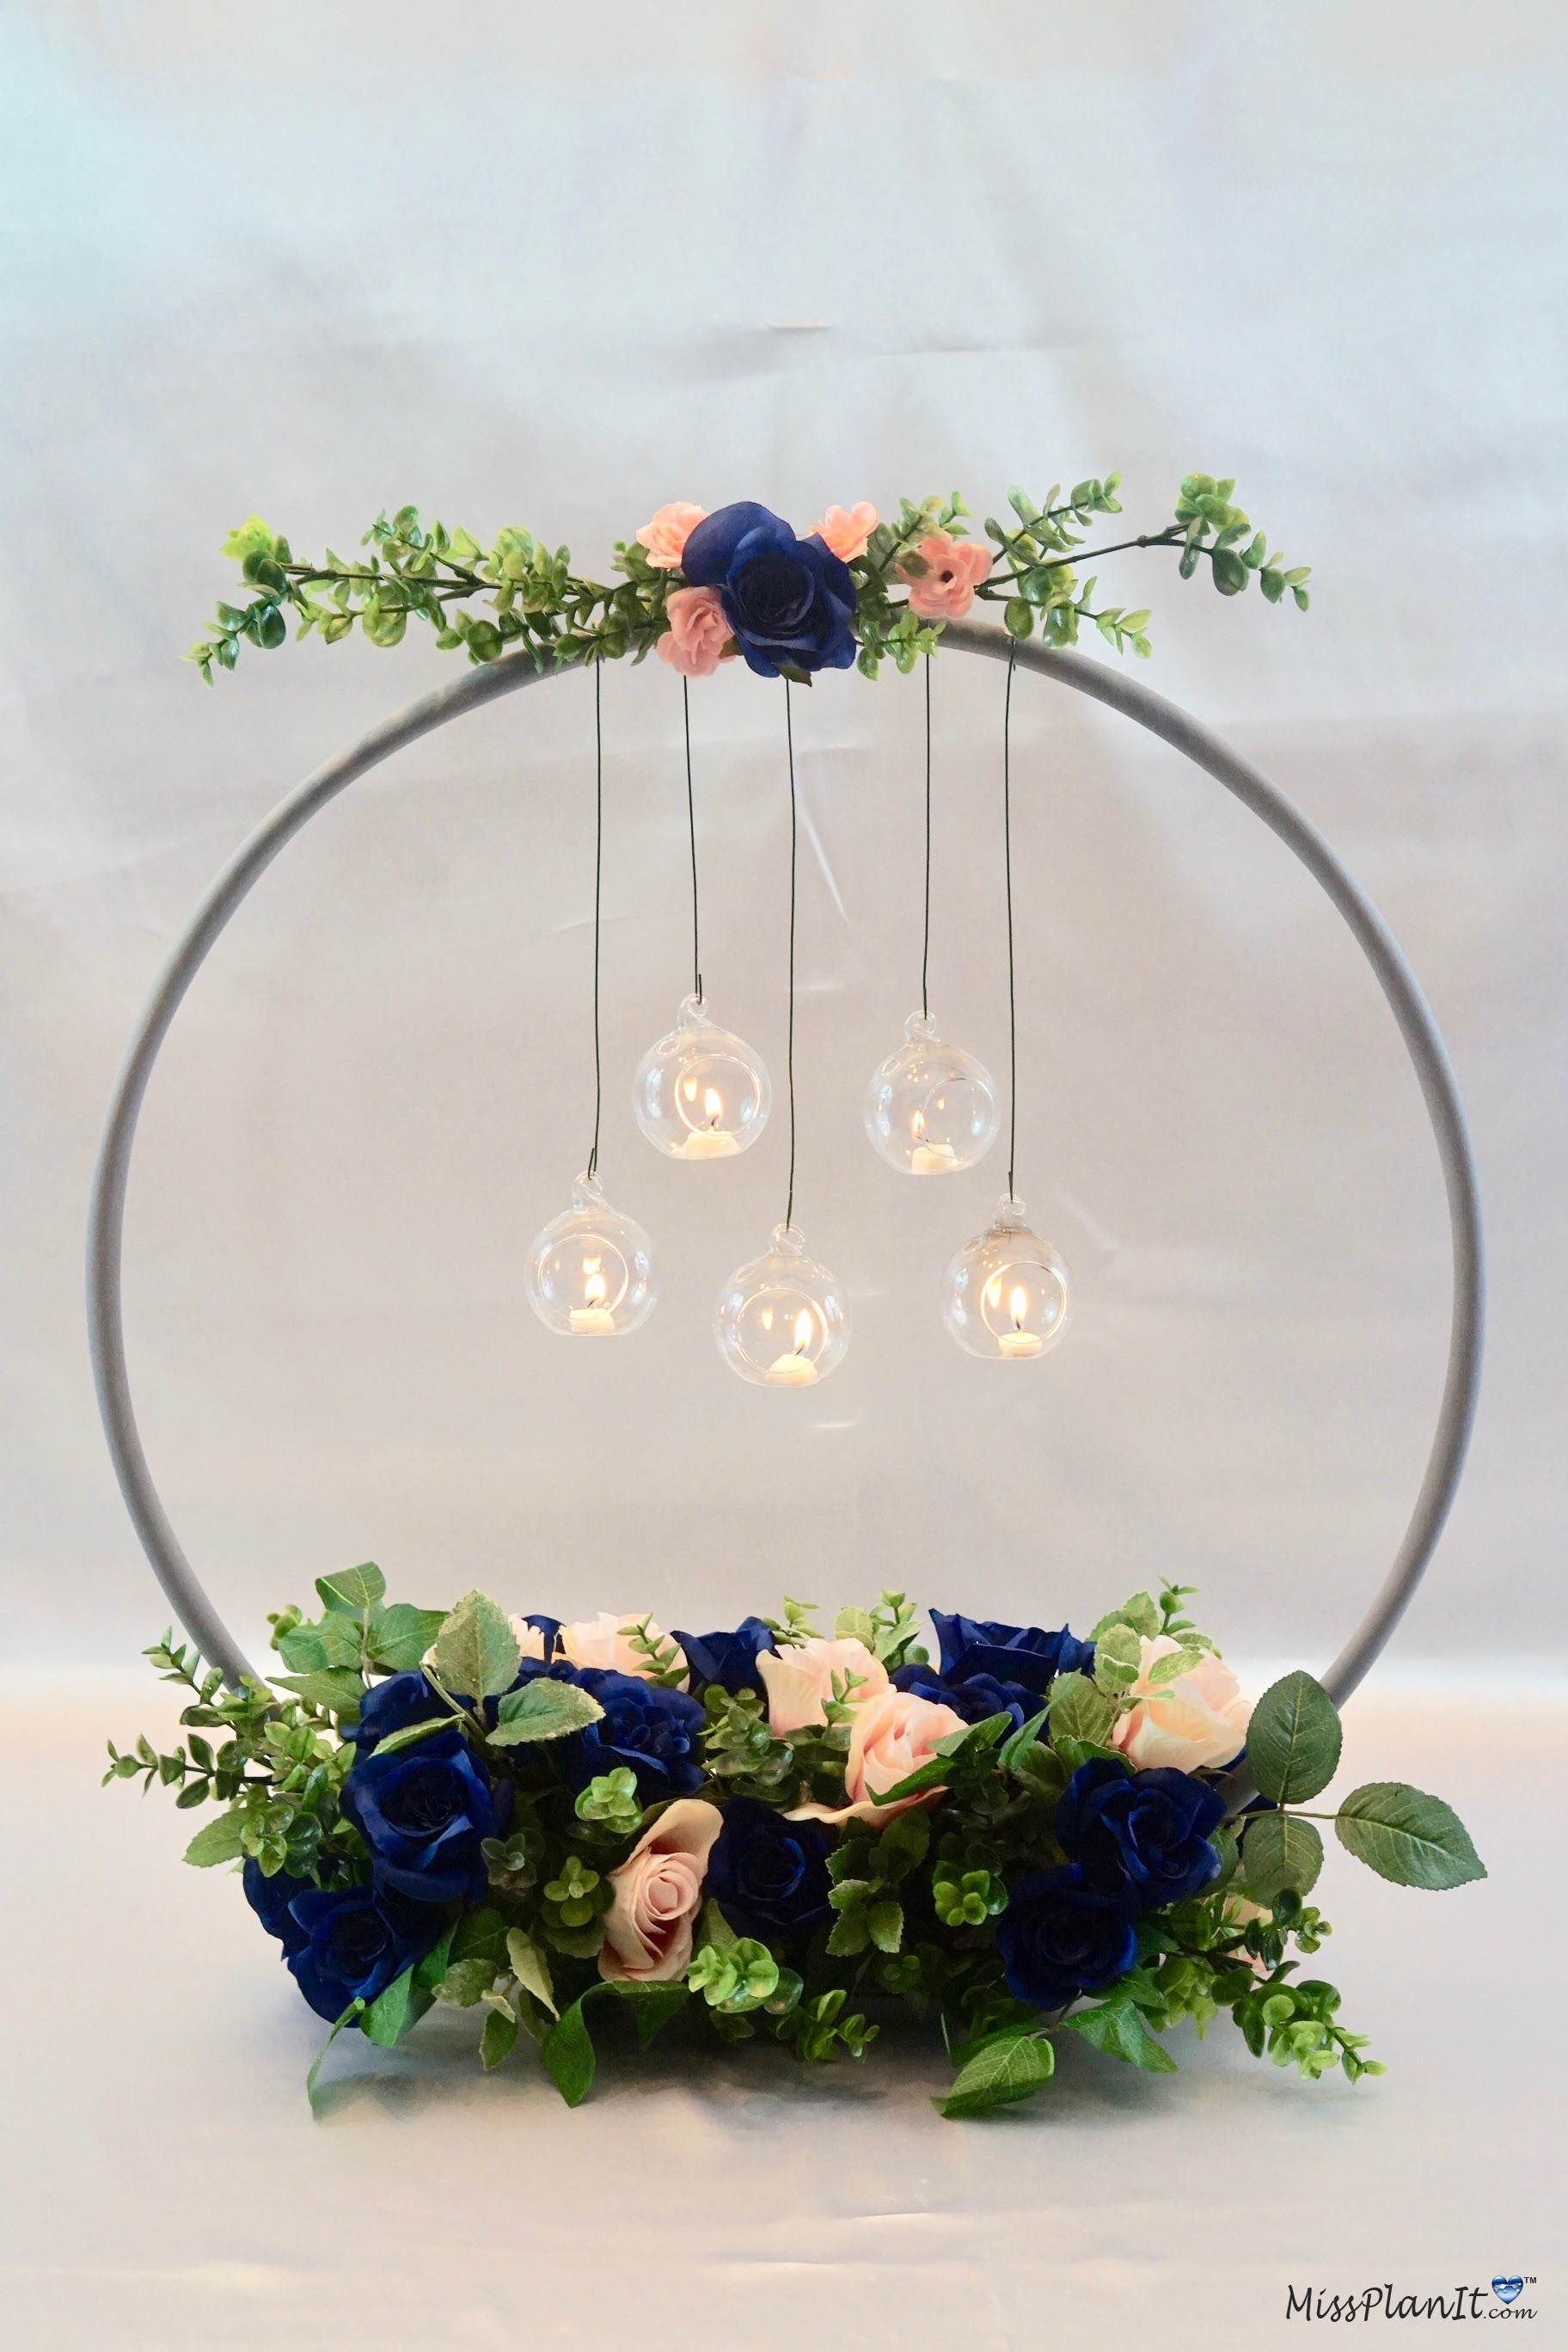 Cool 1 Hula Hoop Wedding Hack How To Make A Chandelier Wedding Home Interior And Landscaping Transignezvosmurscom